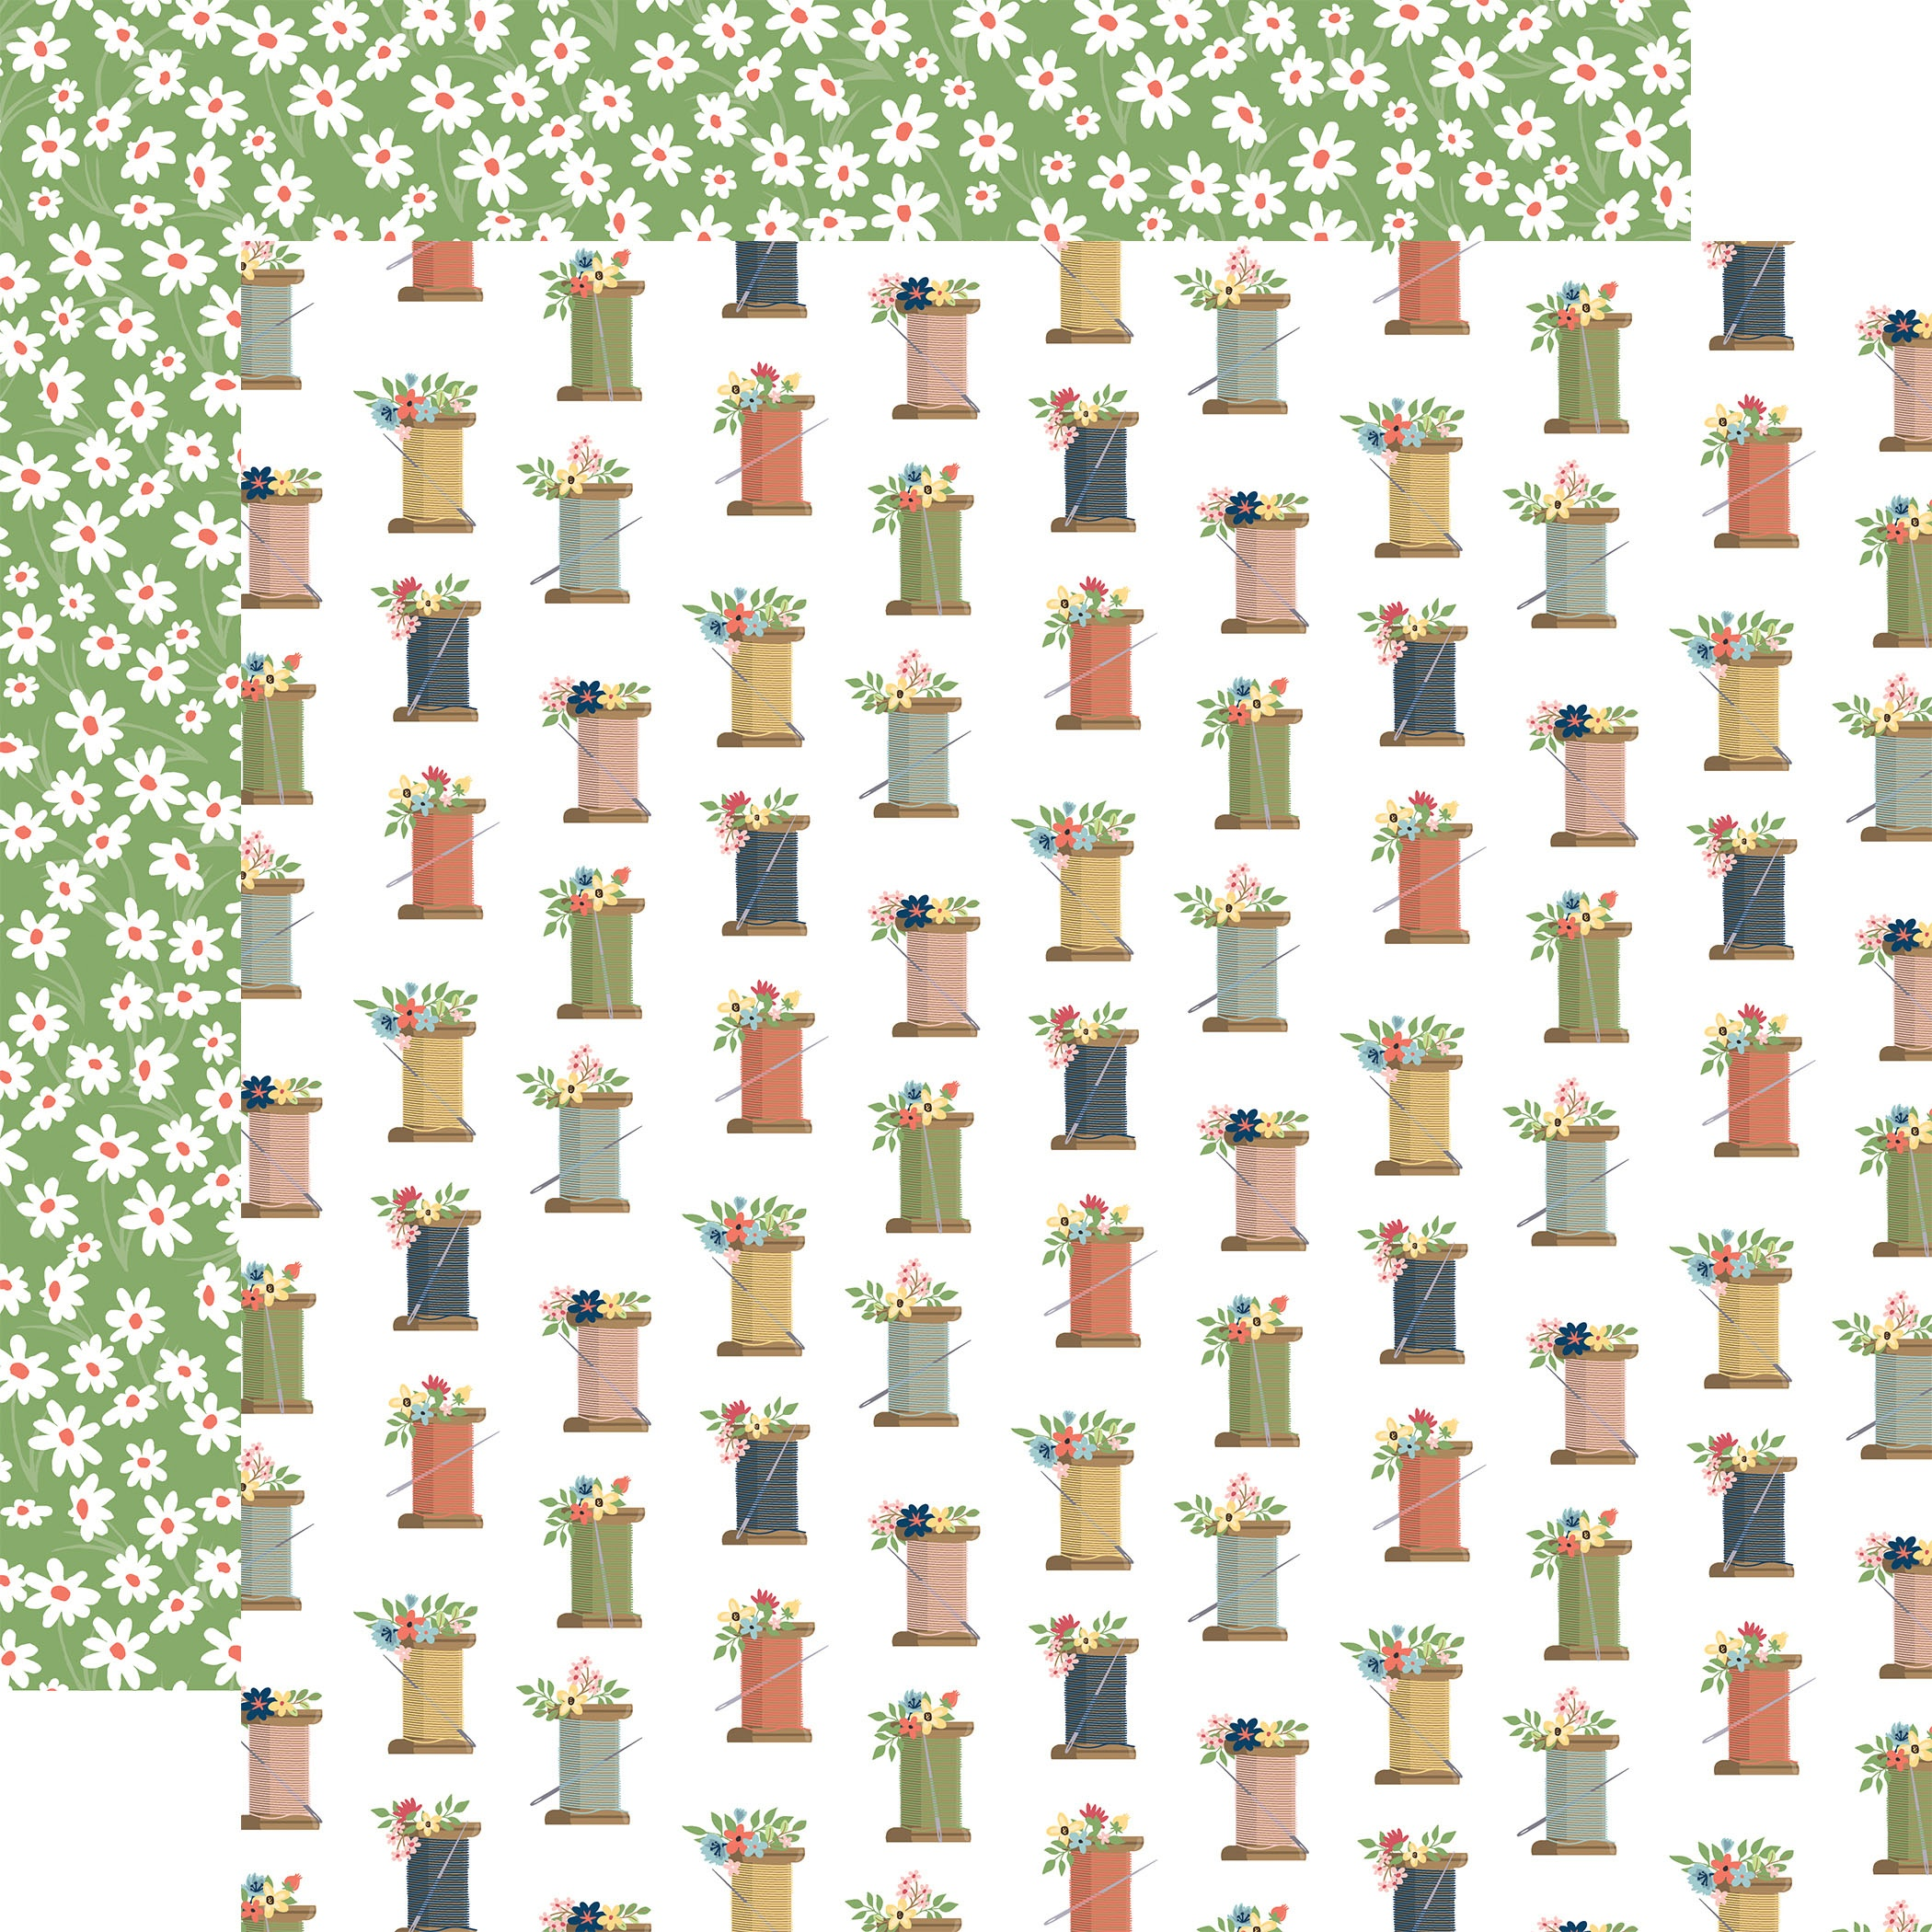 Carta Bella - Craft & Create - SPOOLS - 12x12 Double-Sided Textured Paper